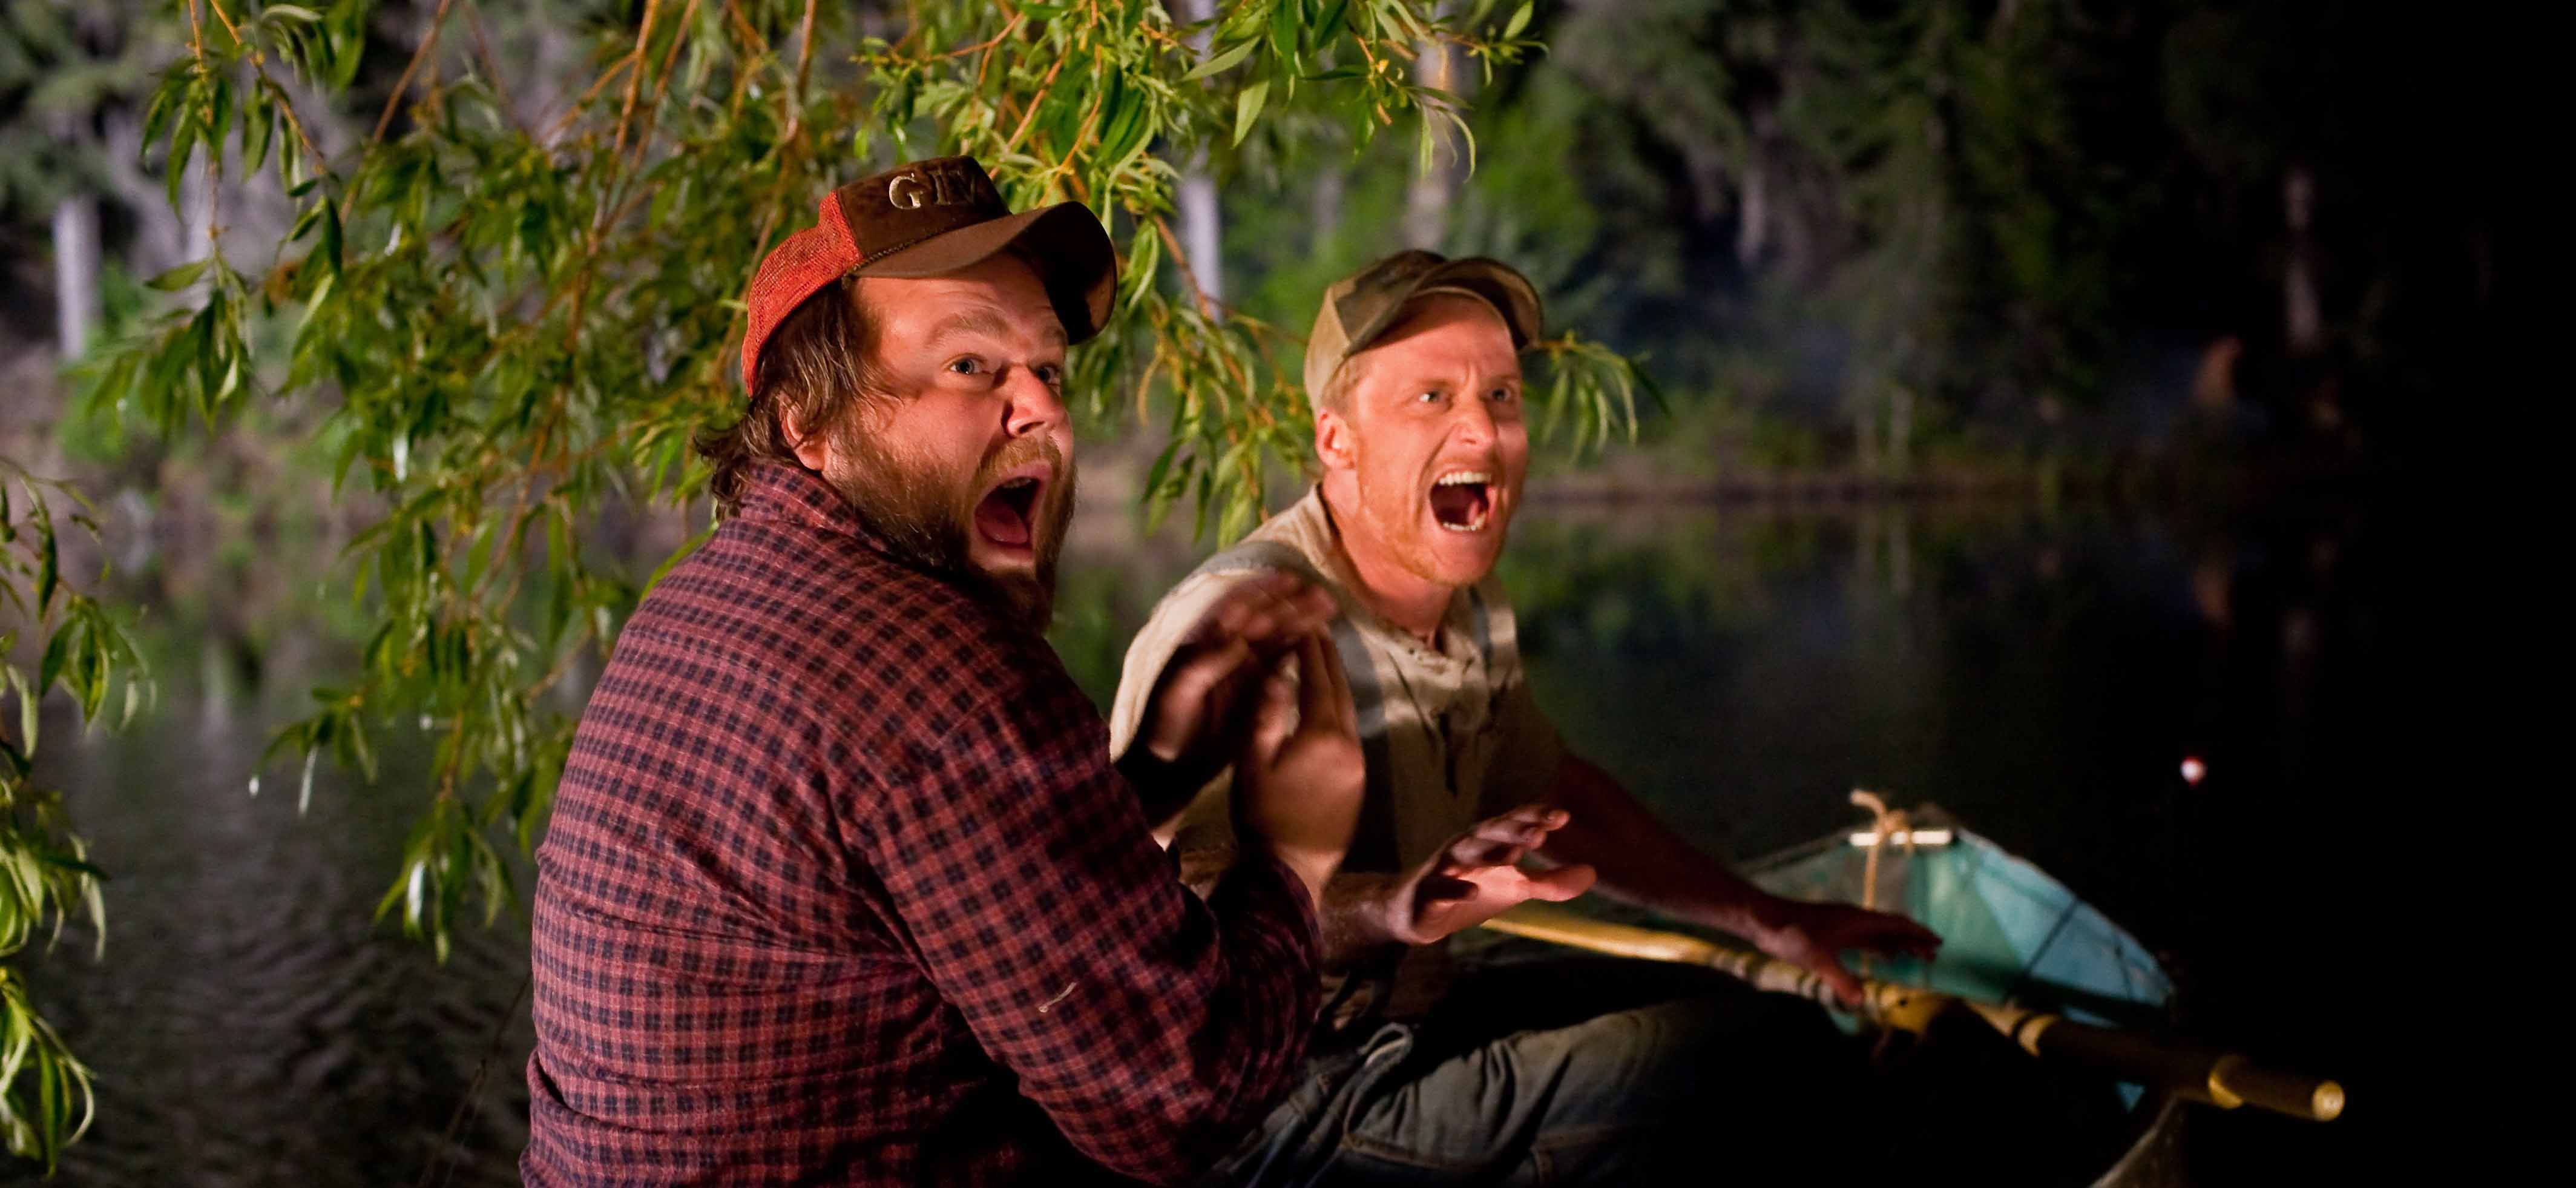 Amazing Tucker And Dale Vs Evil Pictures & Backgrounds